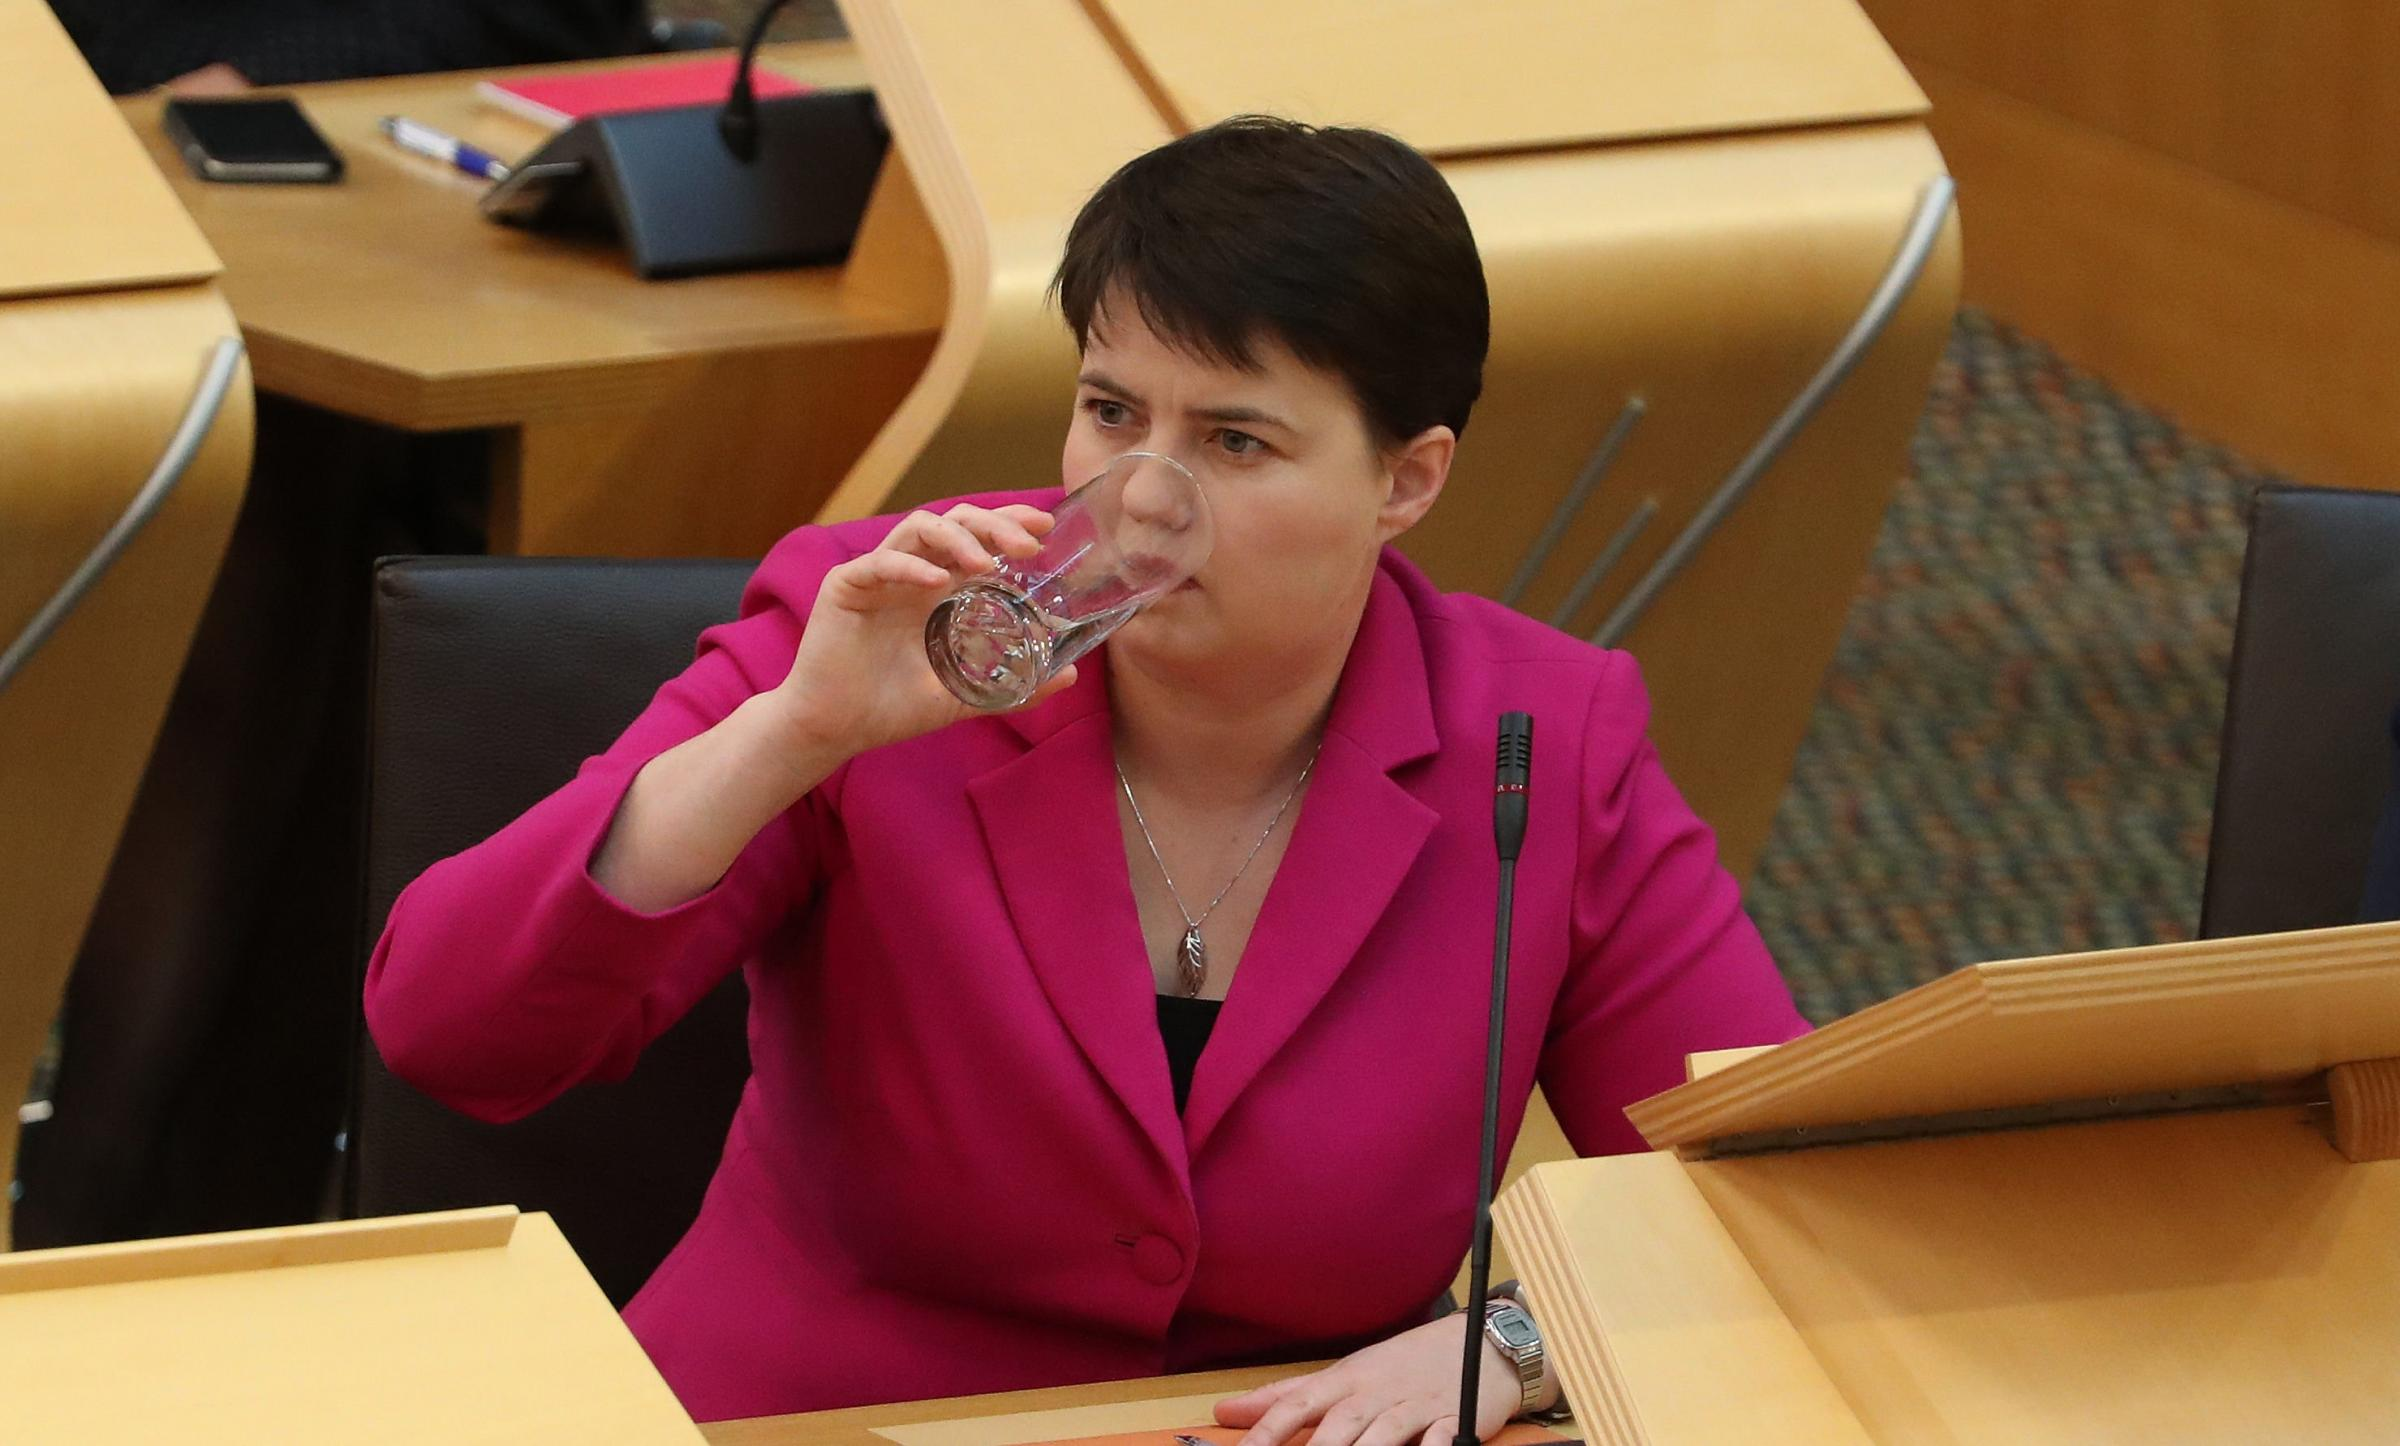 Ruth Davidson used her first question to talk about independence